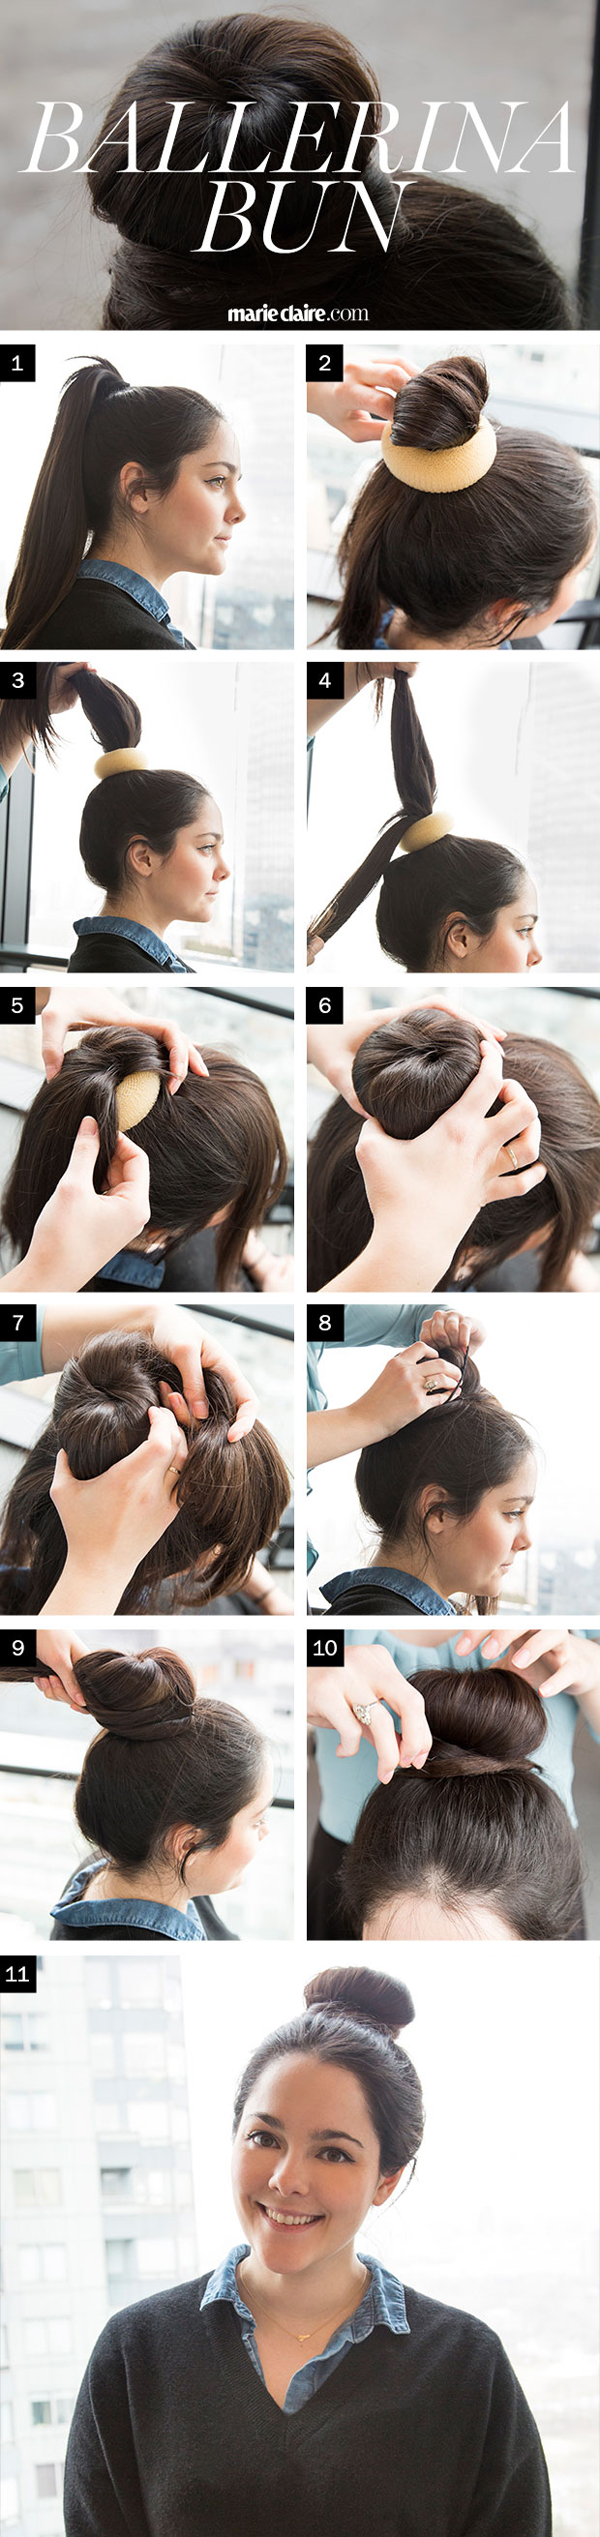 Hair How-To: The Perfect Ballerina Bun